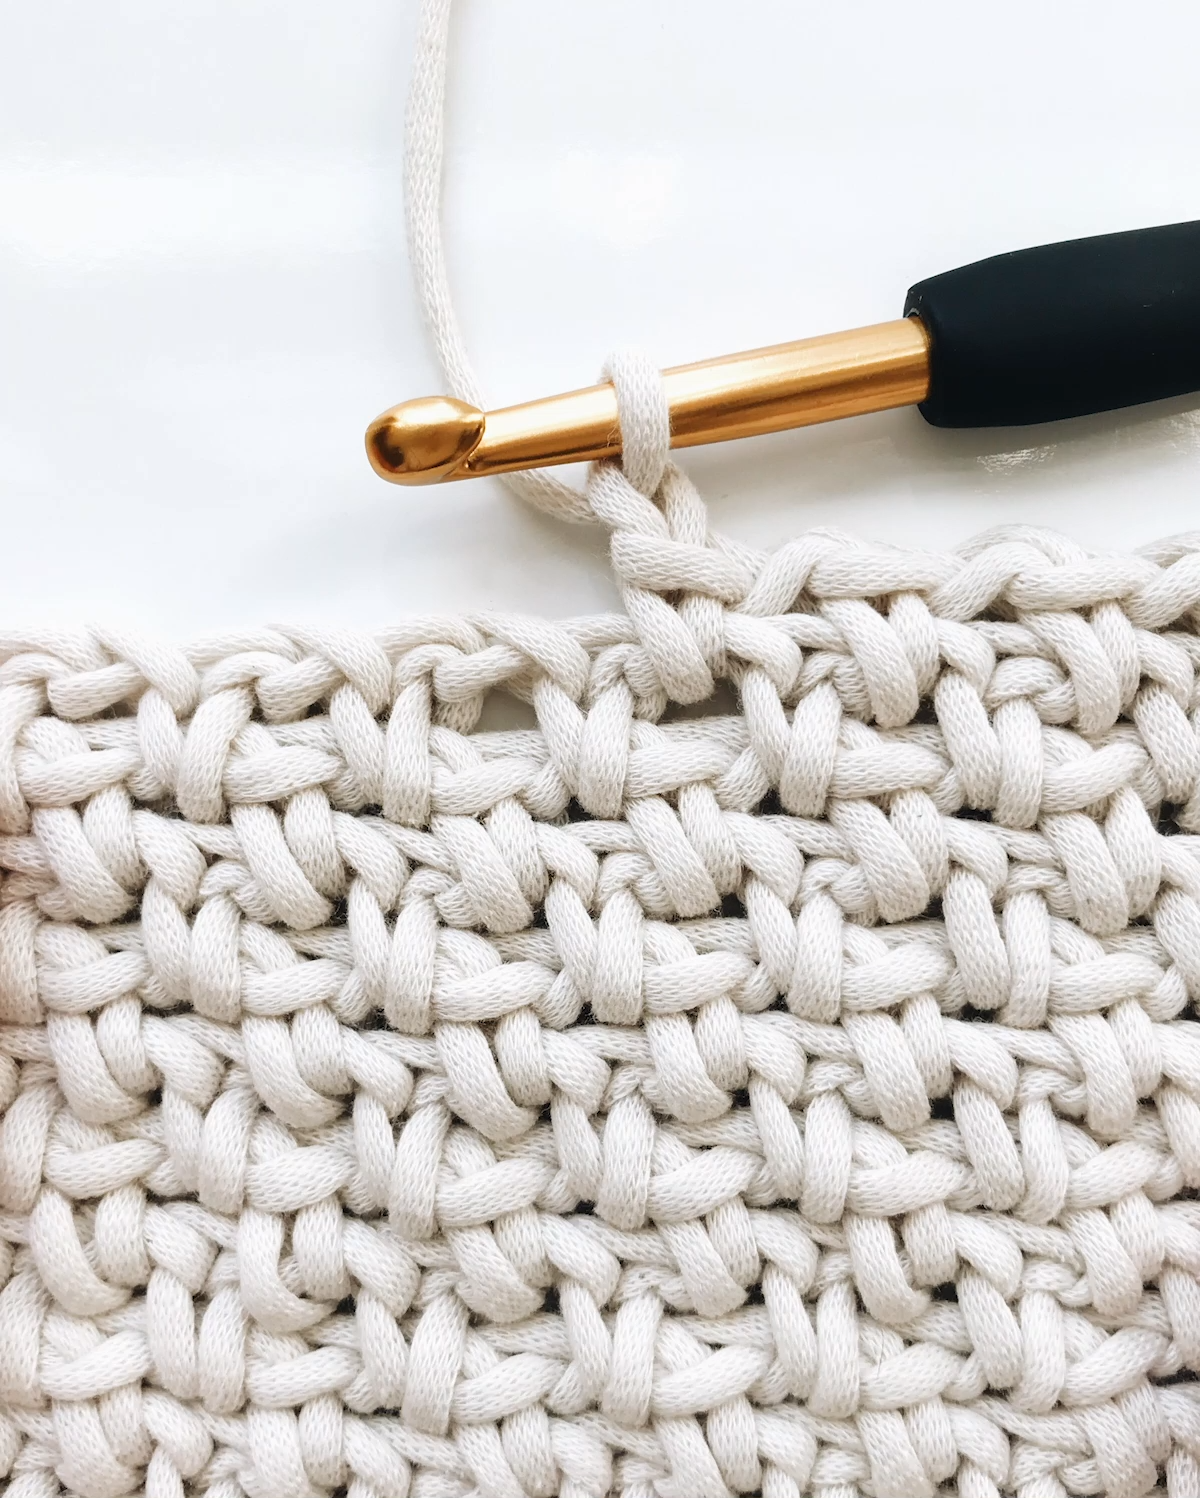 Super easy crochet blanket with written + video instruction. Includes 16 finish sizes so you have all the info you need to make a baby blanket, a king size blanket, and everything in between. All patterns are buy 2 get 1 FREE on debrosse.com.